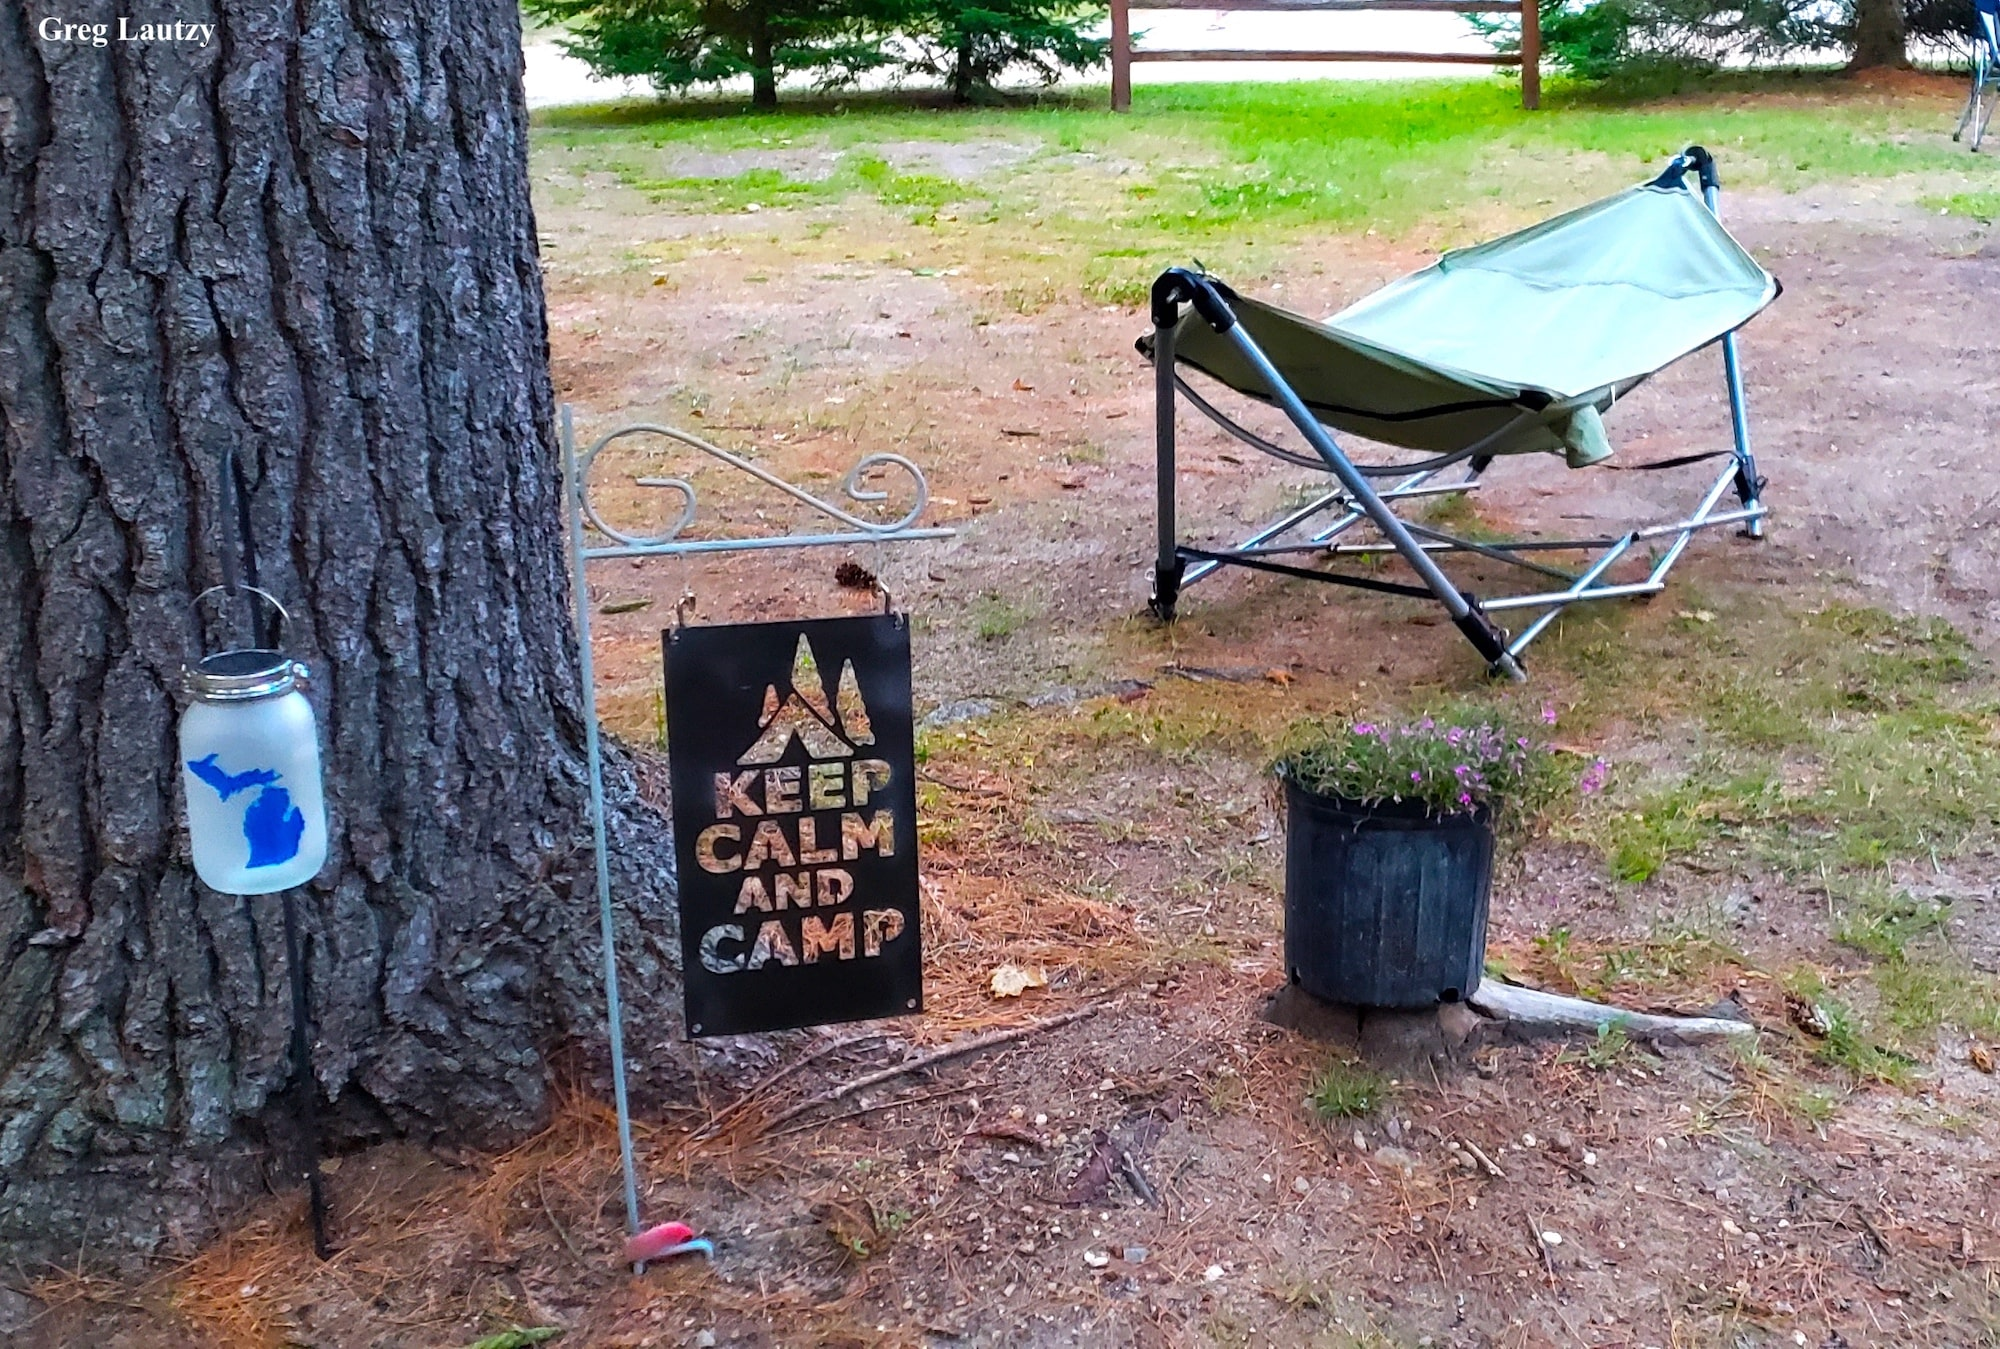 Campsite decor - yard sign, lantern, and hammock